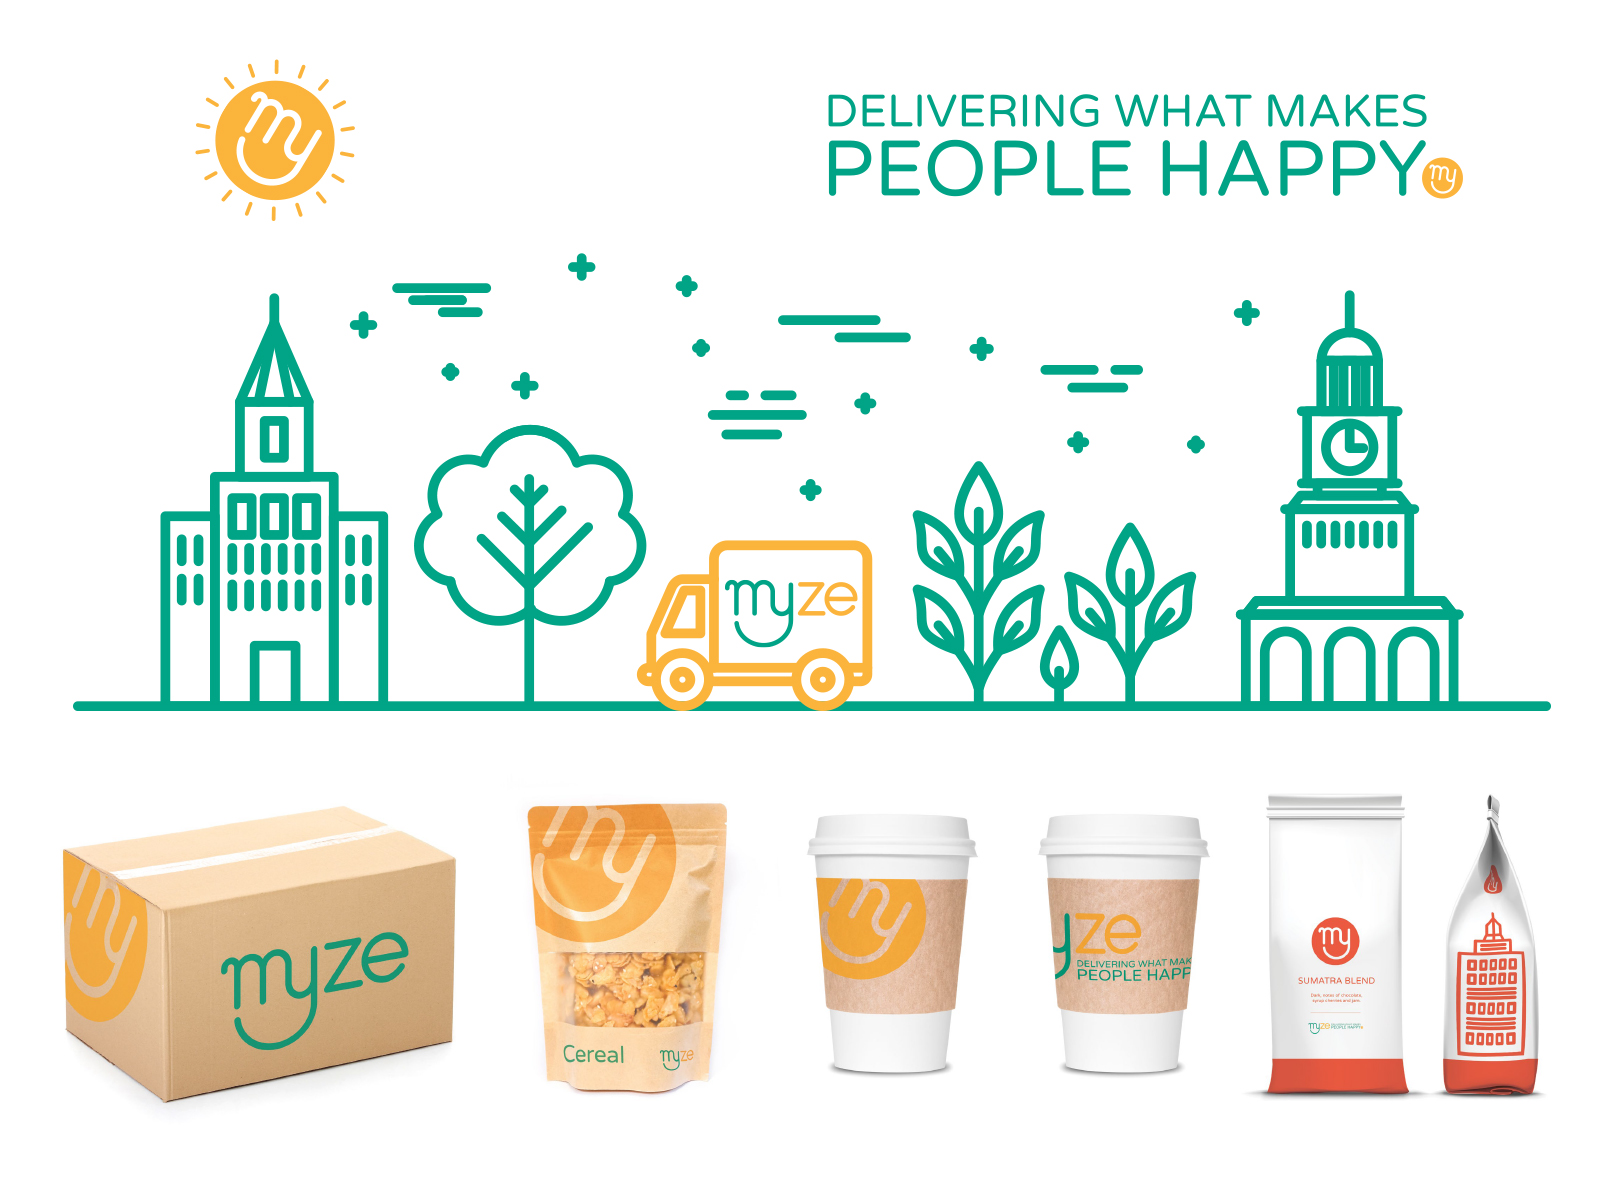 Myze packaging and illustration